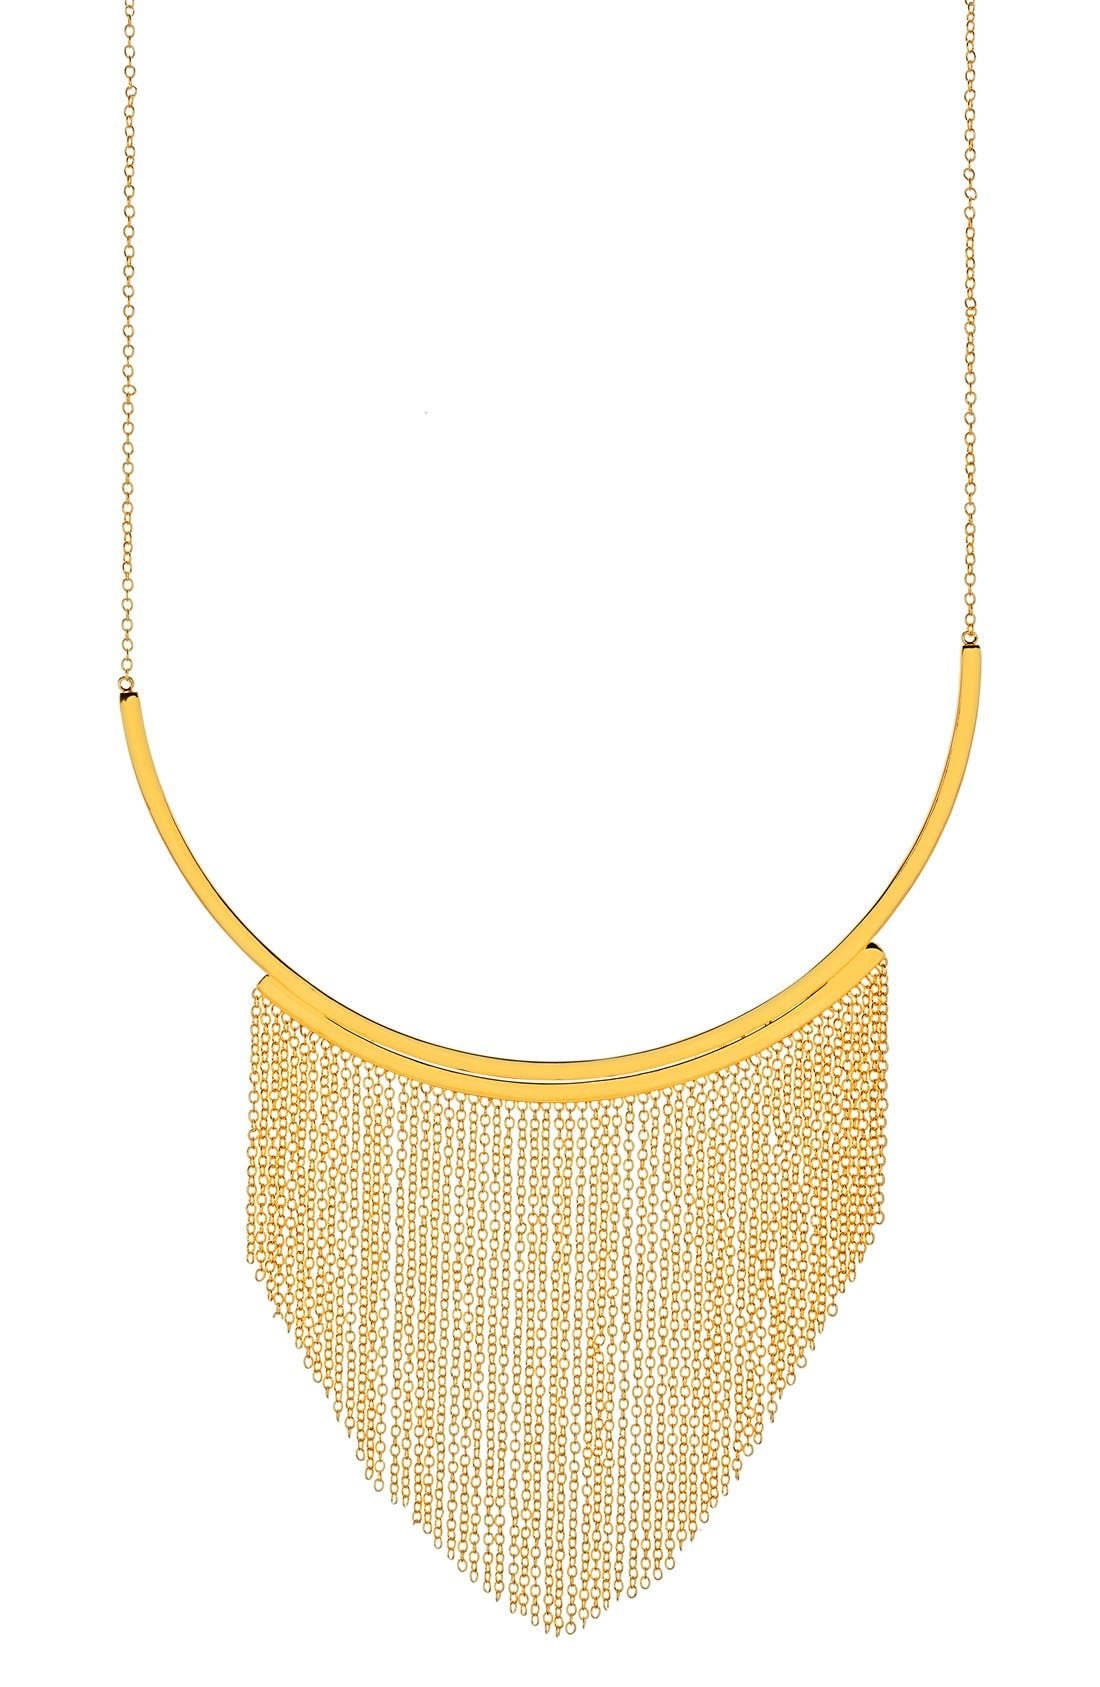 gorjana 'Meg' Fringe Collar Necklace